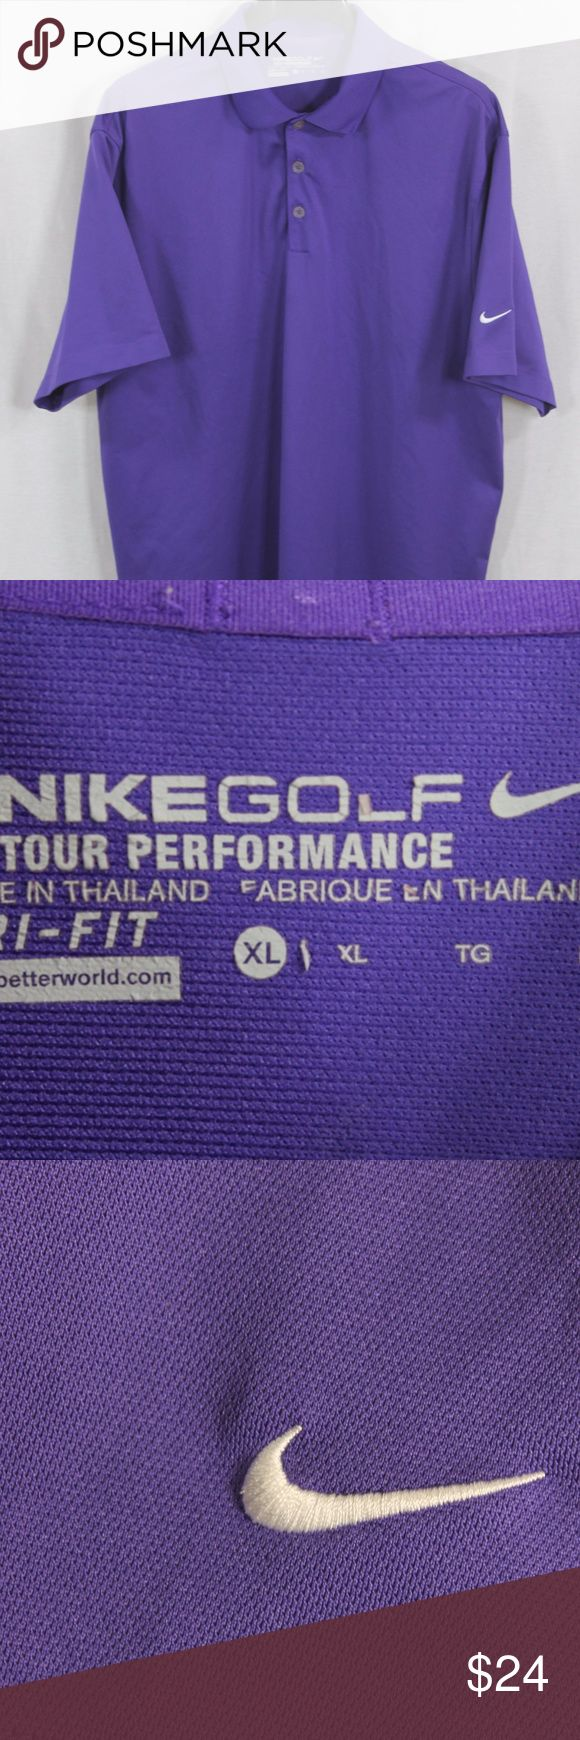 """MENS NIKE GOLF PURPLE POLO SHIRT XL SIZE:     XL  CHEST:     24""""  LENGTH:     32""""  STYLE:DRI-FIT  MATERIAL:     100%  POLY  CONDITION:        BRAND NEW WITHOUT TAGS. SOURCED DIRECTLY FROM A NATIONAL UPSCALE U.S. RETAILER. QUALITY AND AUTHENTICITY GUARANTEED!    59-43-G Nike Shirts Polos"""